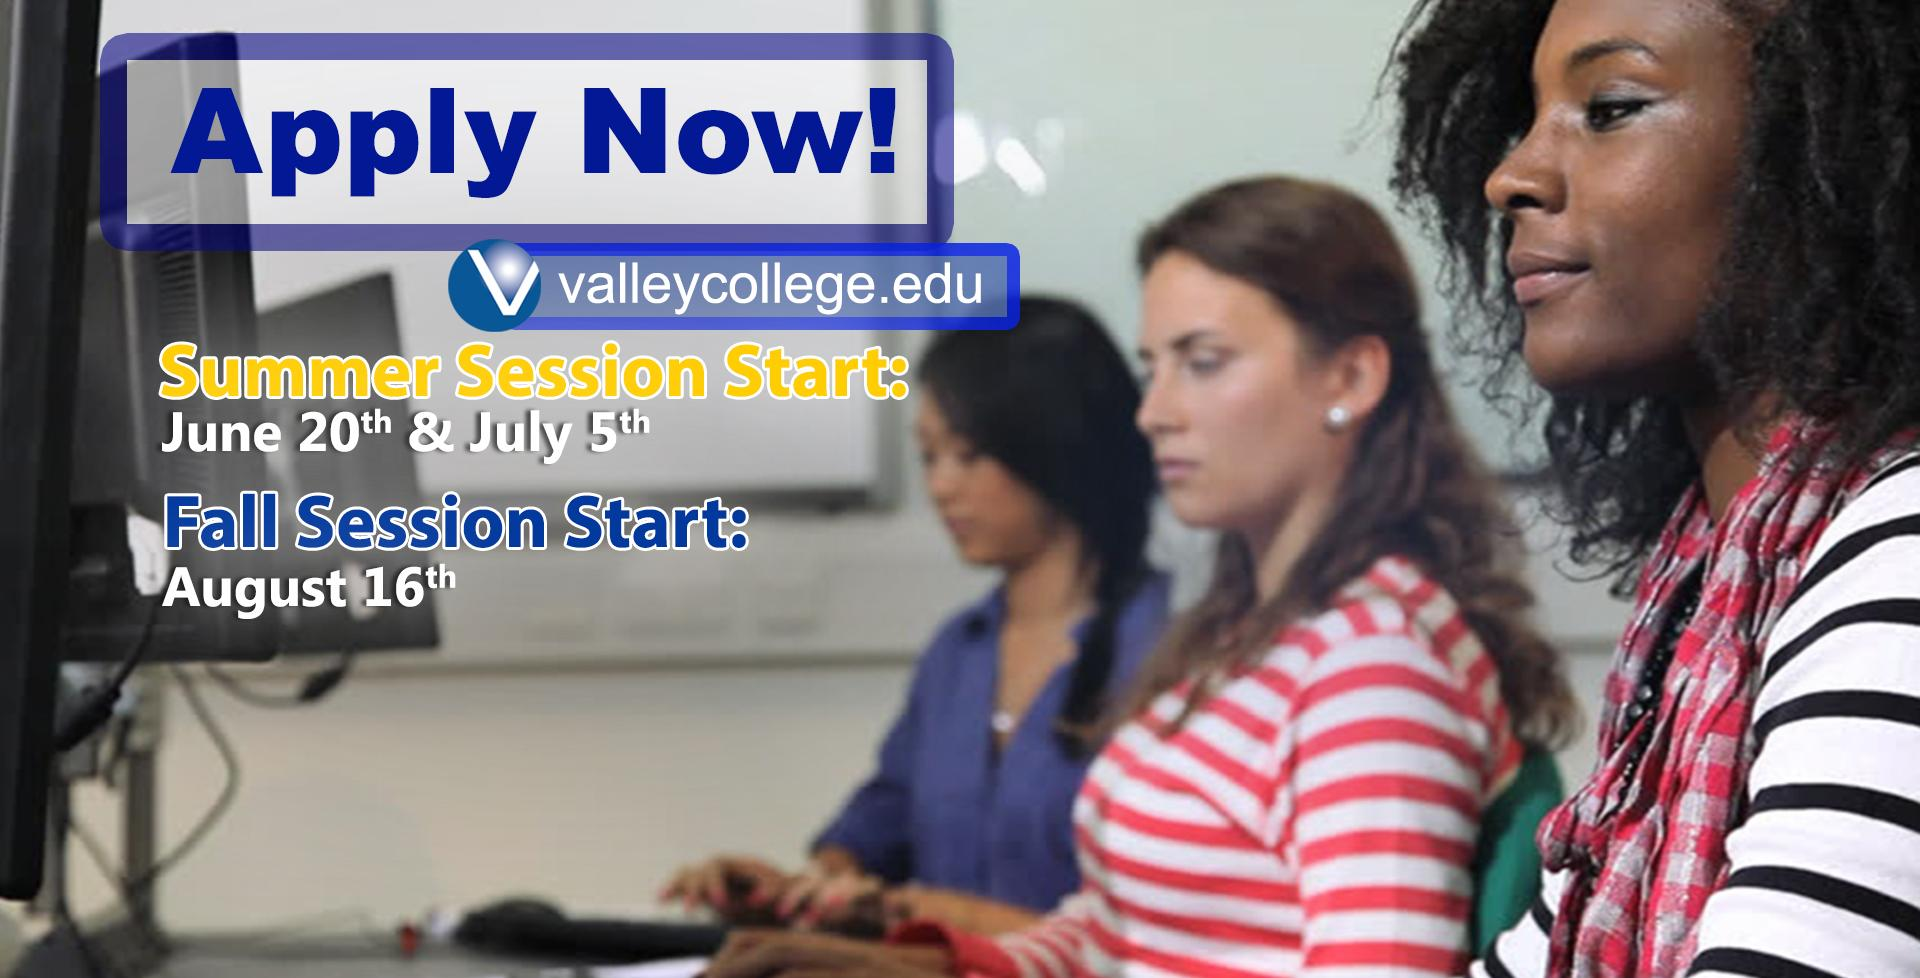 Apply Now for Summer or Fall!